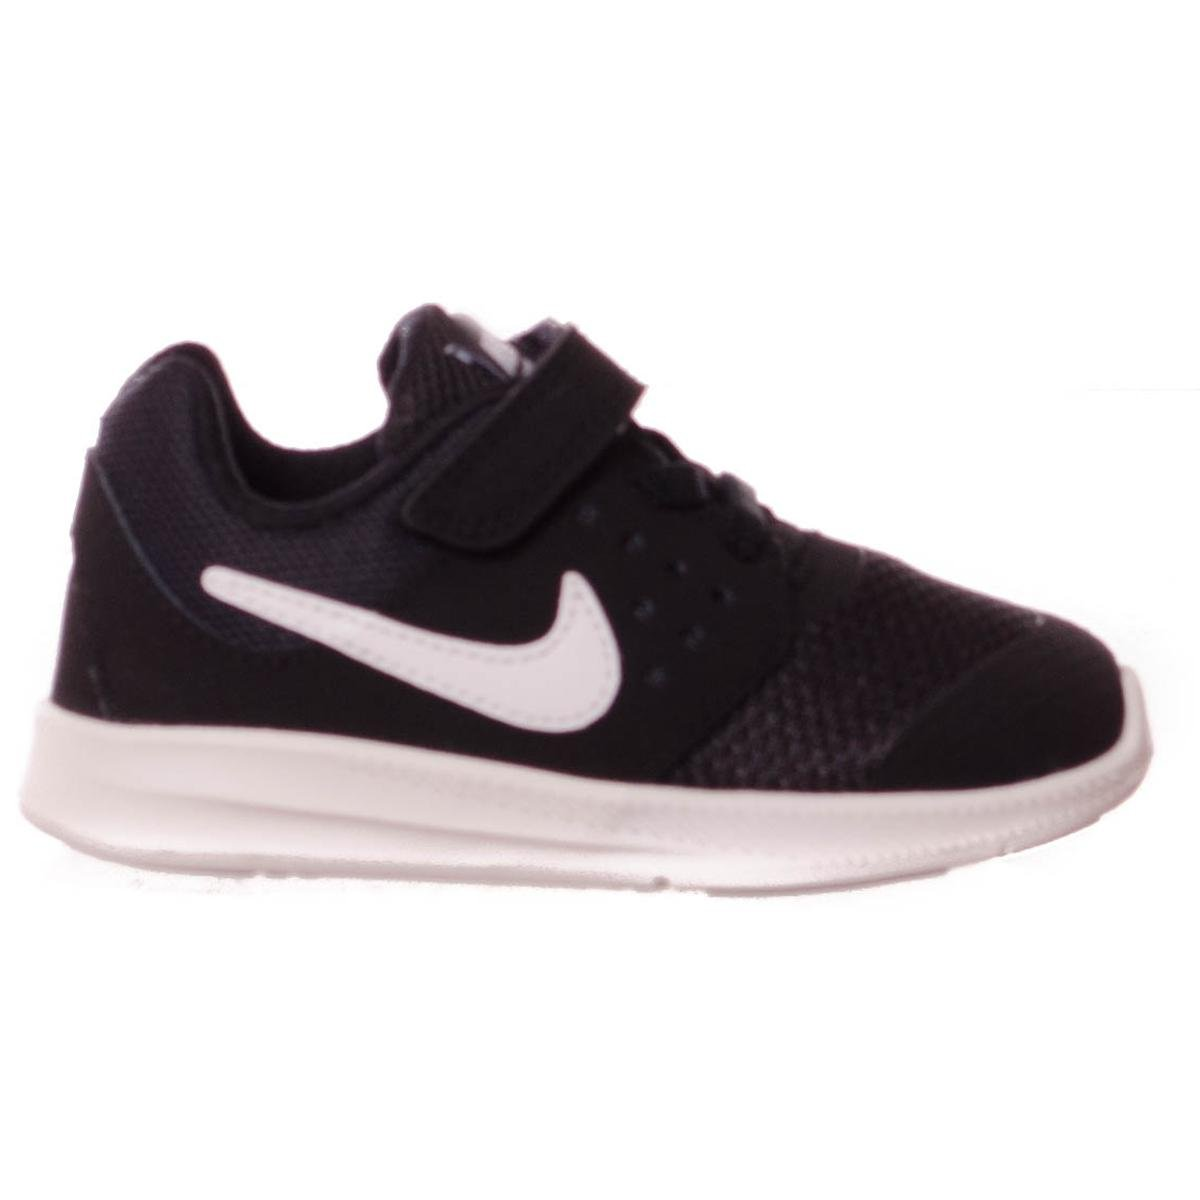 NIKE Baby Boy's Downshifter 7 Athletic Shoe (8 Toddler M, Black/White/Anthracite)